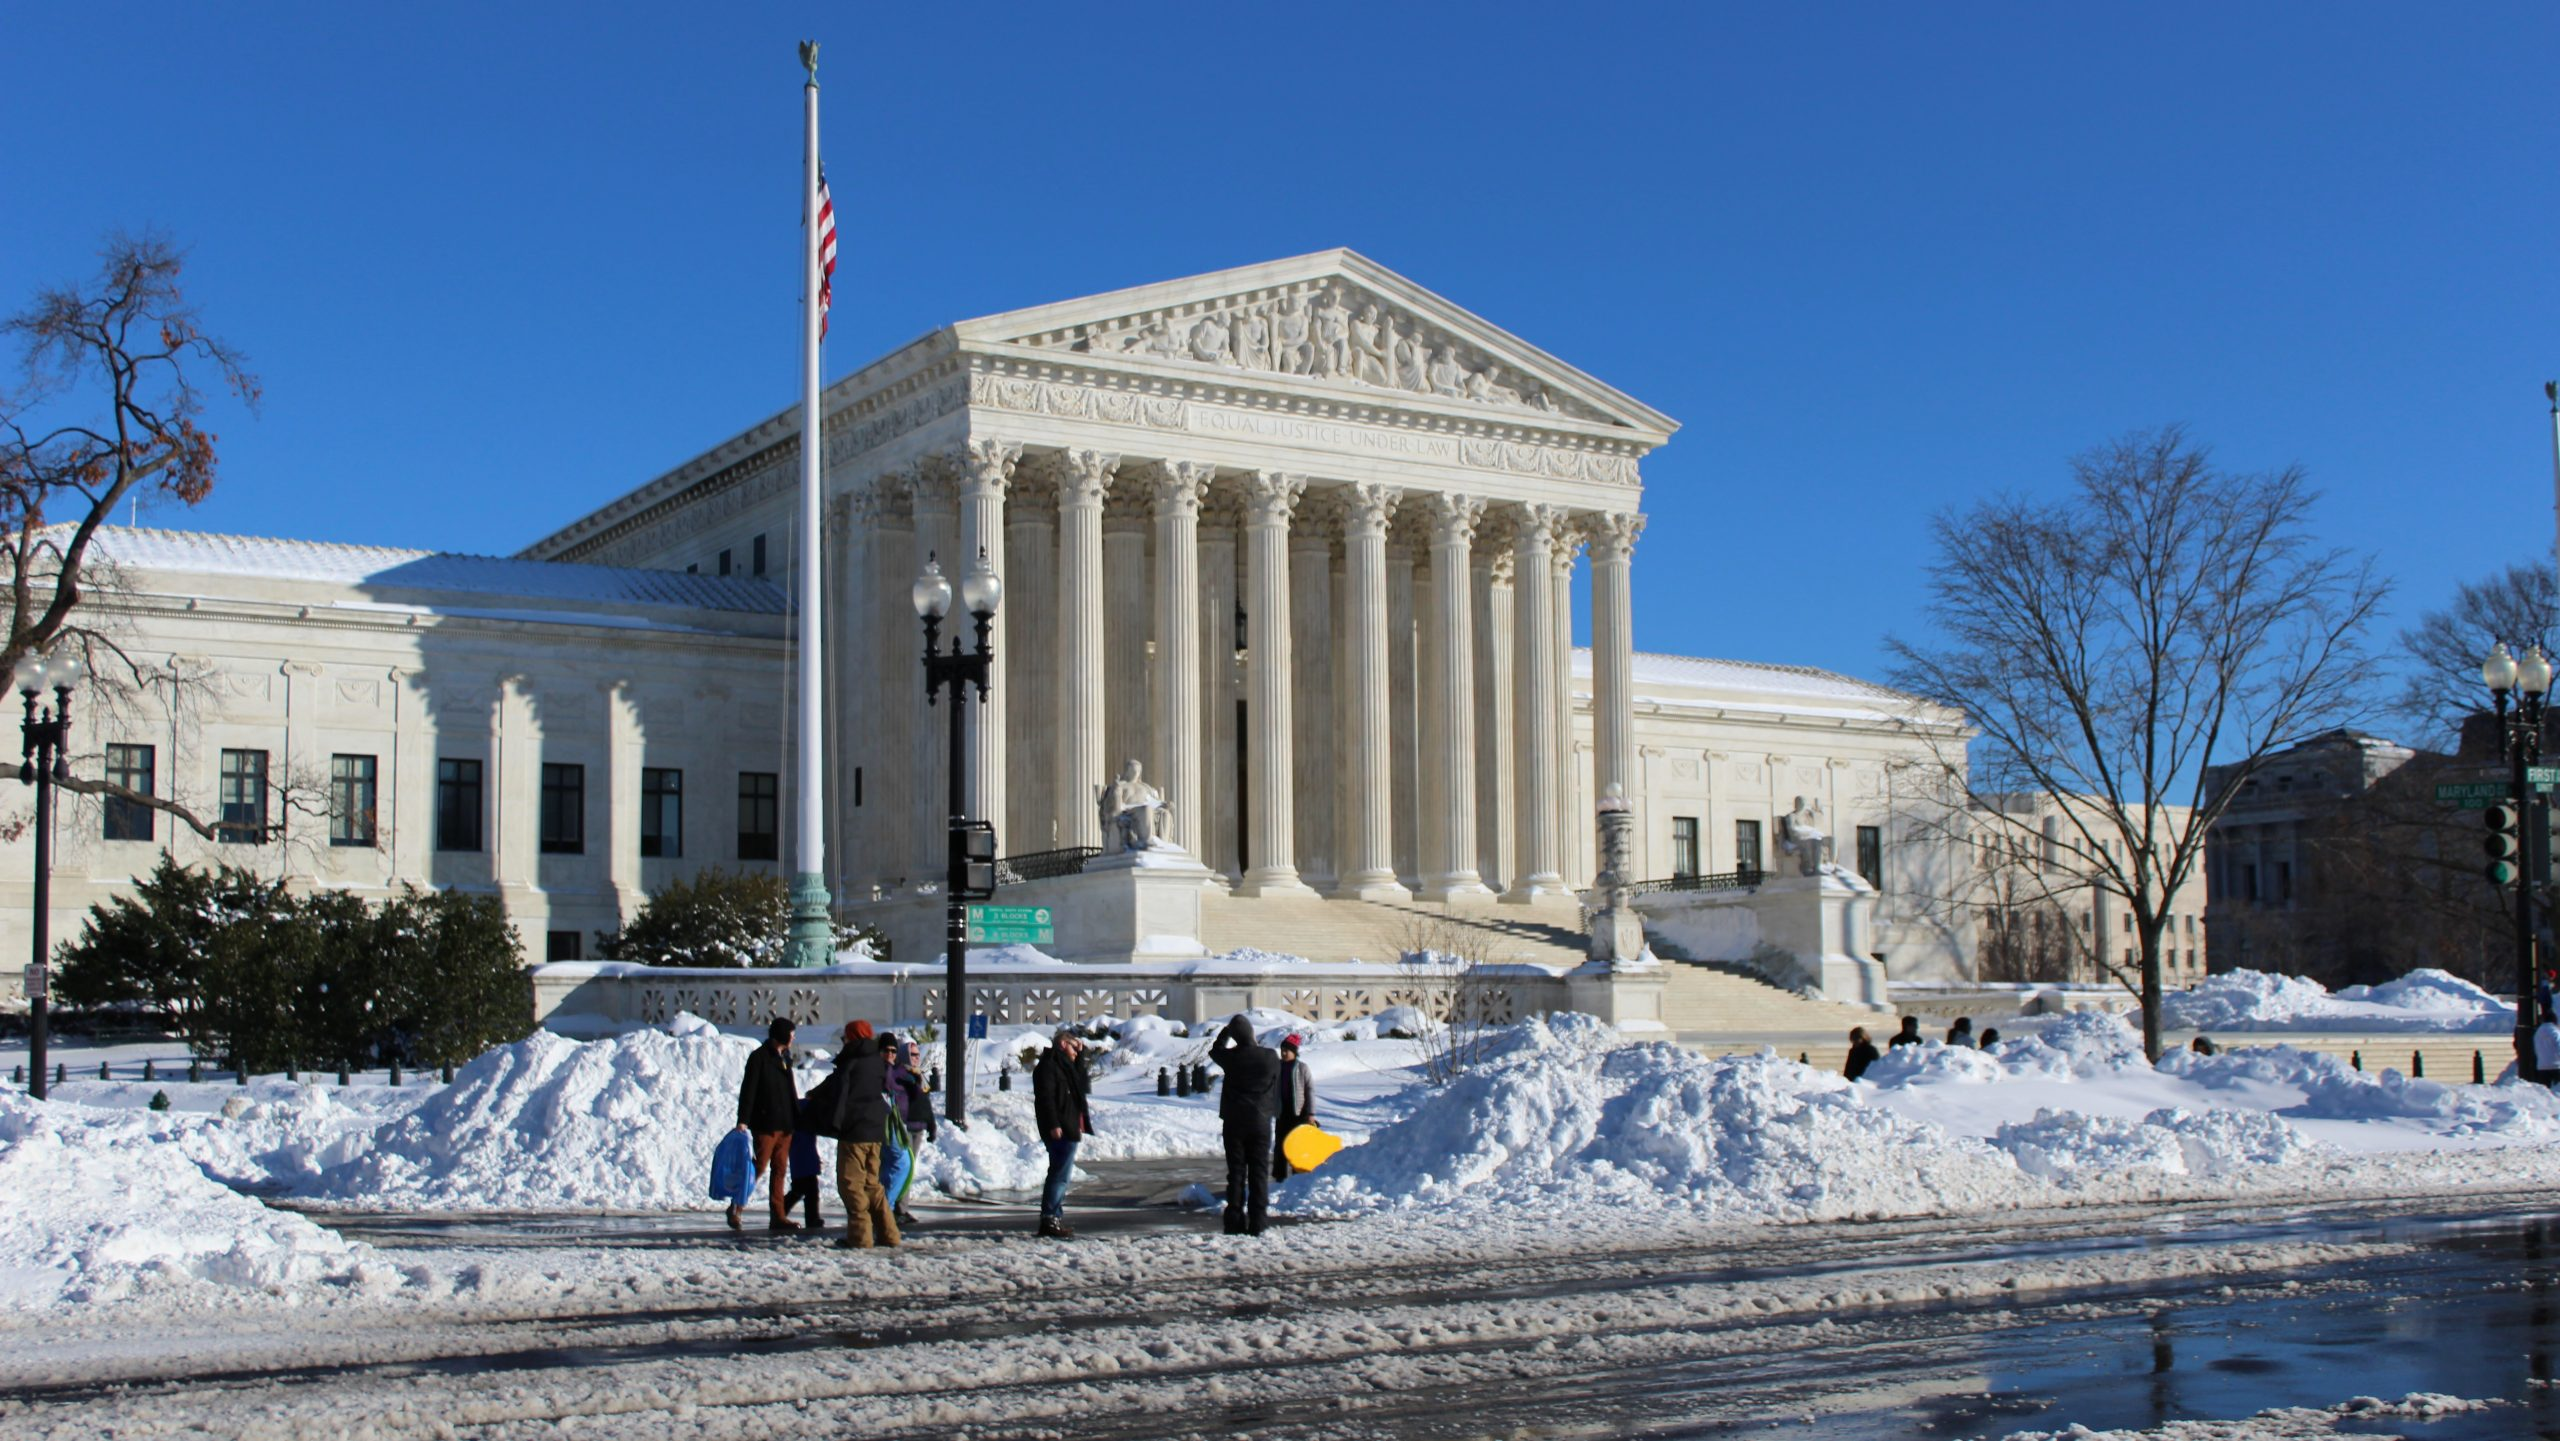 Supreme Court building after snowfall